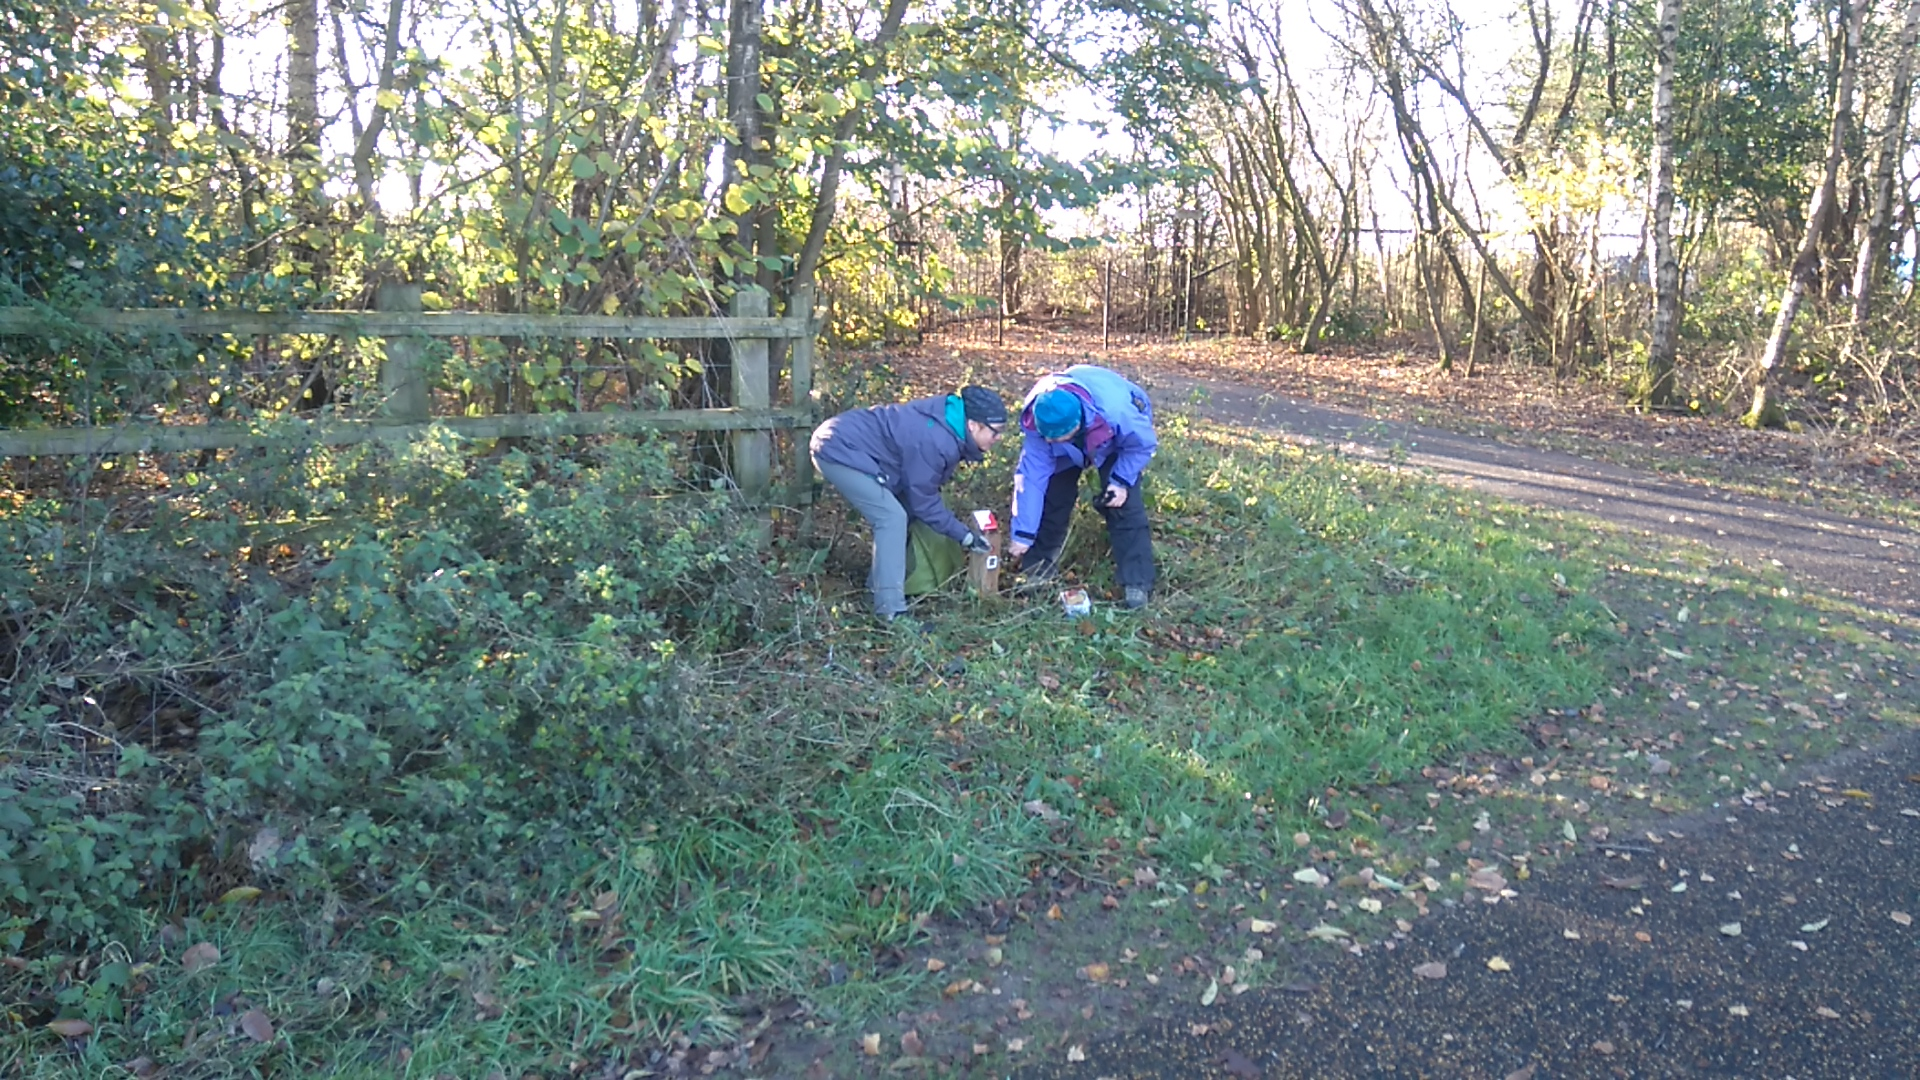 Working party restoring Blackleach orienteering course